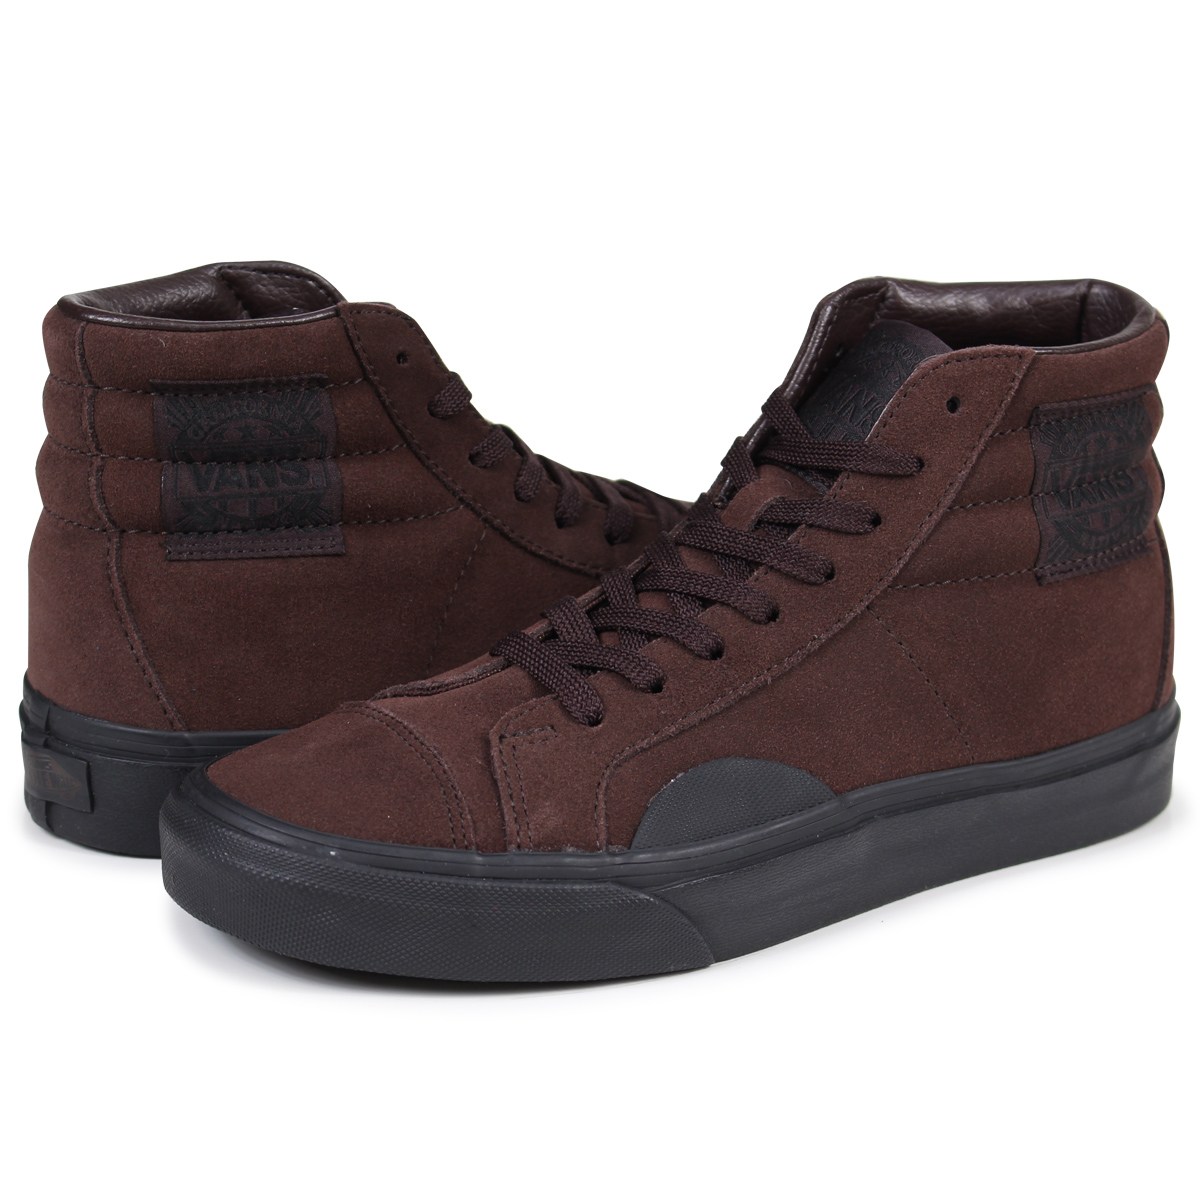 567ae05efb Whats up Sports  238 VANS STYLE 238 VN0A3JFIQXQ sneakers men gap Dis ...